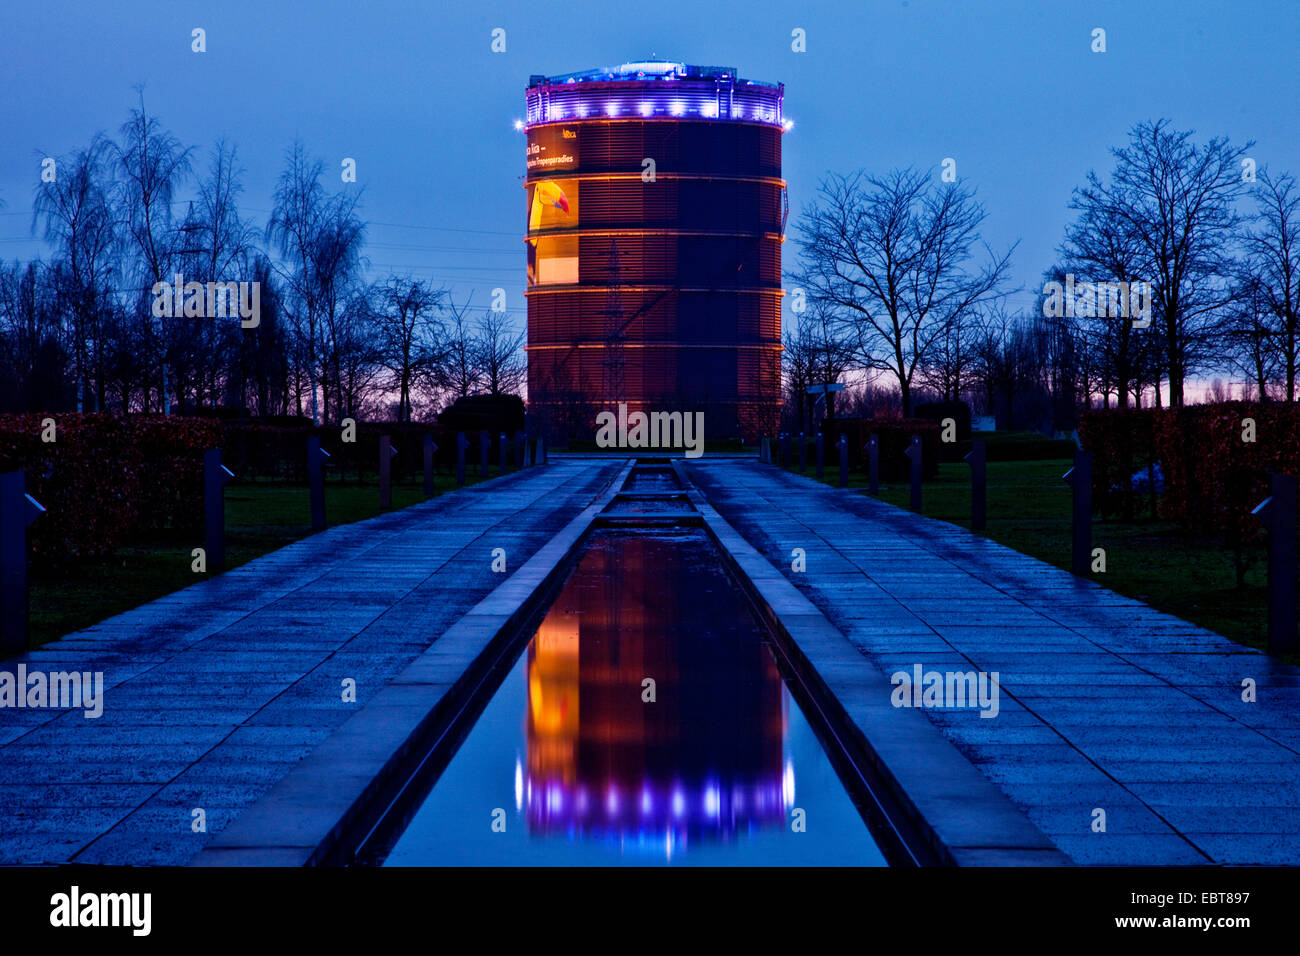 illuminated gasometer, view from Olga park, Germany, North Rhine-Westphalia, Ruhr Area, Oberhausen Stock Photo